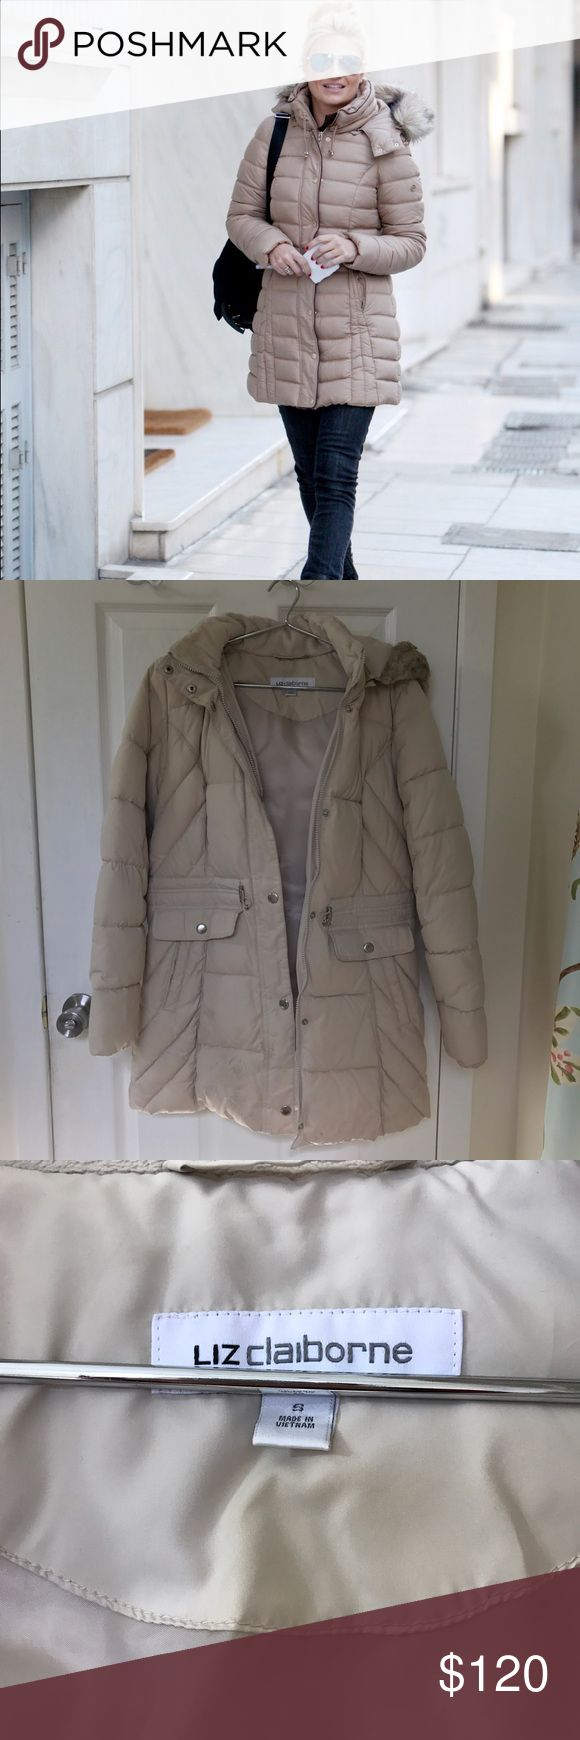 Liz Claiborne long puffer winter coat Great condition Liz Claiborne long puffer winter coat. Extremely warm and great quality coat. Size small cream colored coat. Originally purchased at jcpenny for $200. Comment below any questions or measurement requests. 💜MAKE AN OFFER💜     tags: American eagle, AEO, VS pink, Victoria's Secret pink, PINK, ugg, birkenstocks, bath and body works, B&BW, Hollister, urban outfitters, Alex and Ani, Michael kors, Vera Bradley, lululemon, coach, Nike, adidas…